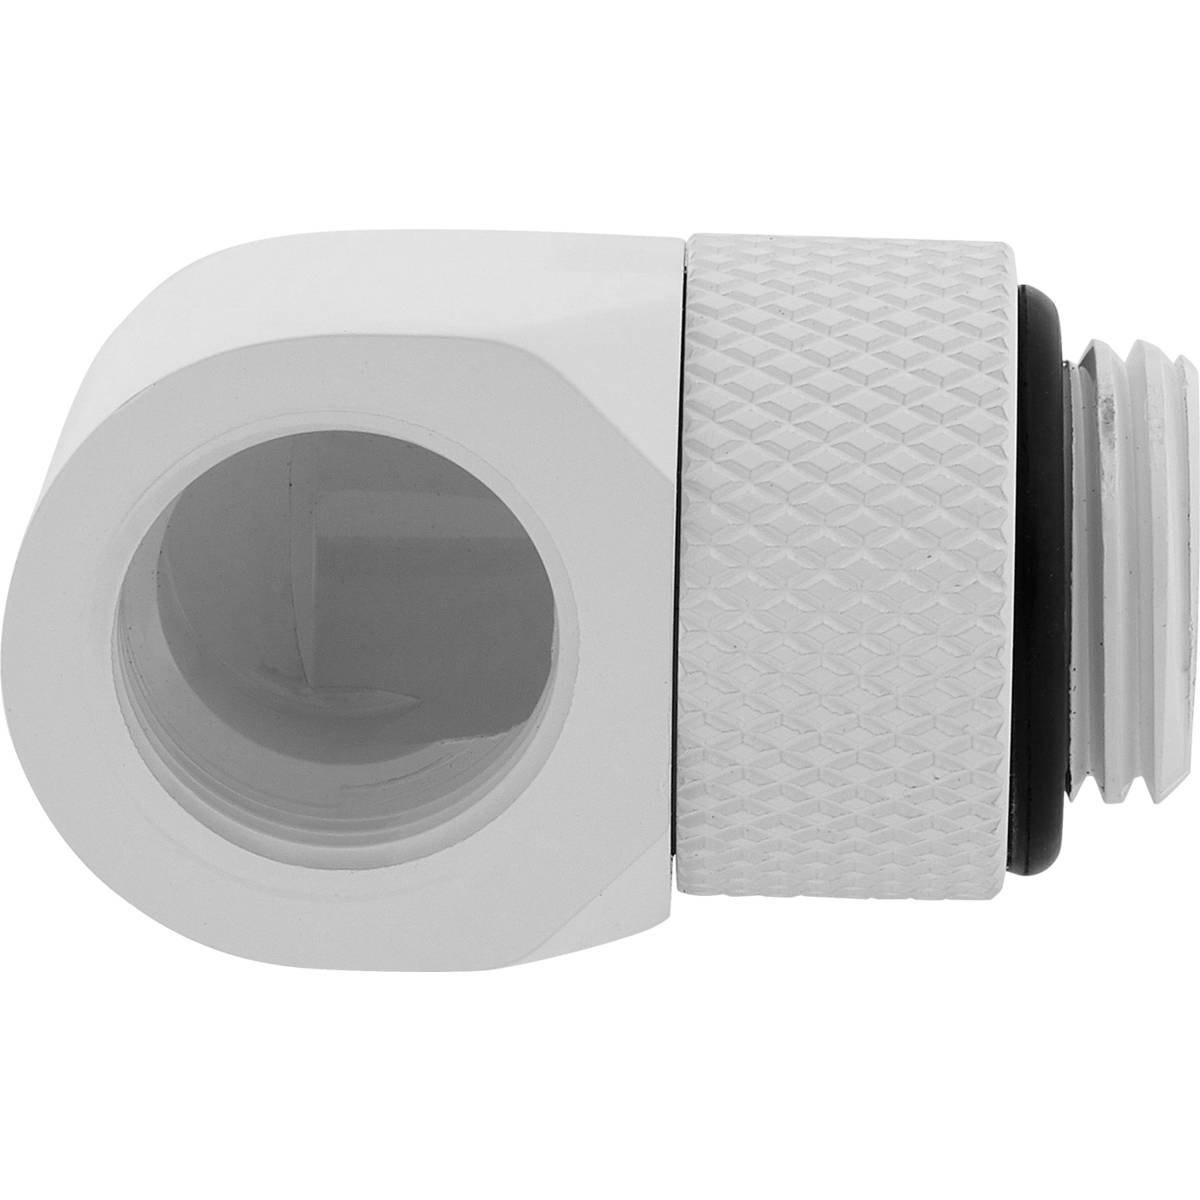 CORSAIR Hydro X Series 90° Rotary Adapter Twin Pack - White